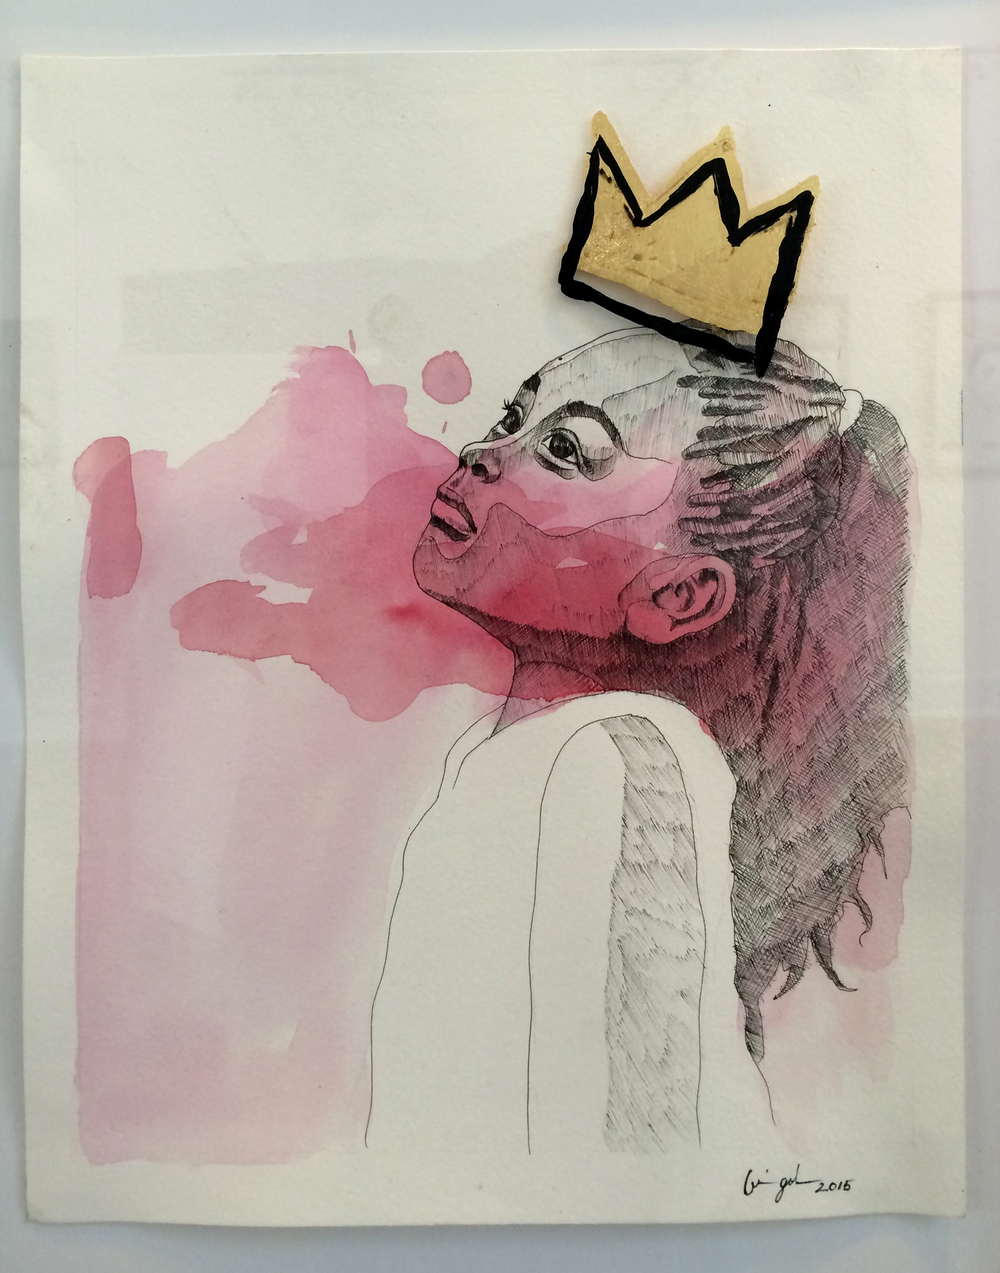 (SOLD) CMYK: Kings & Queens of promise